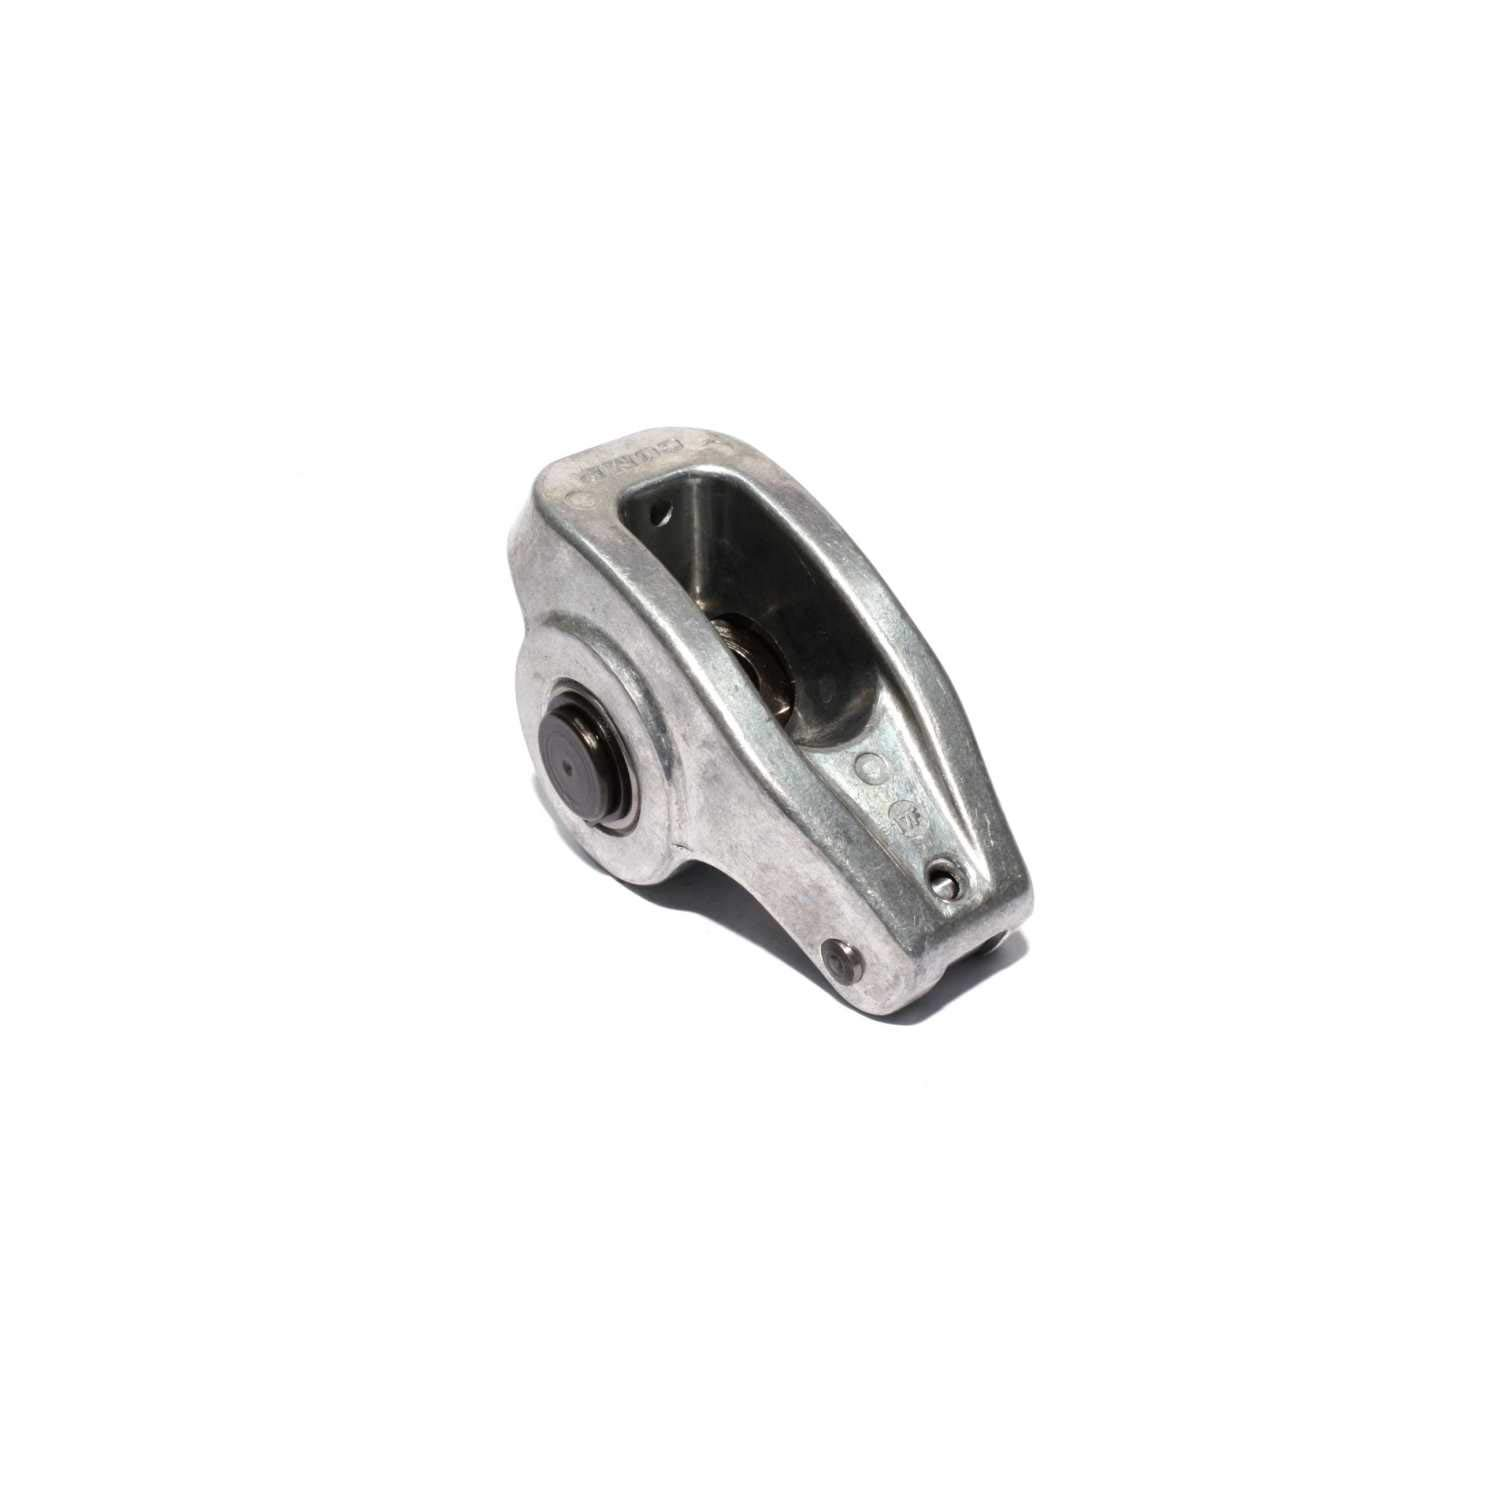 COMP Cams 17045-1 High Energy Die Cast Aluminum Roller Rocker Arm with 1.73 Ratio and 7//16 Stud Diameter for 351C and Big Block Ford